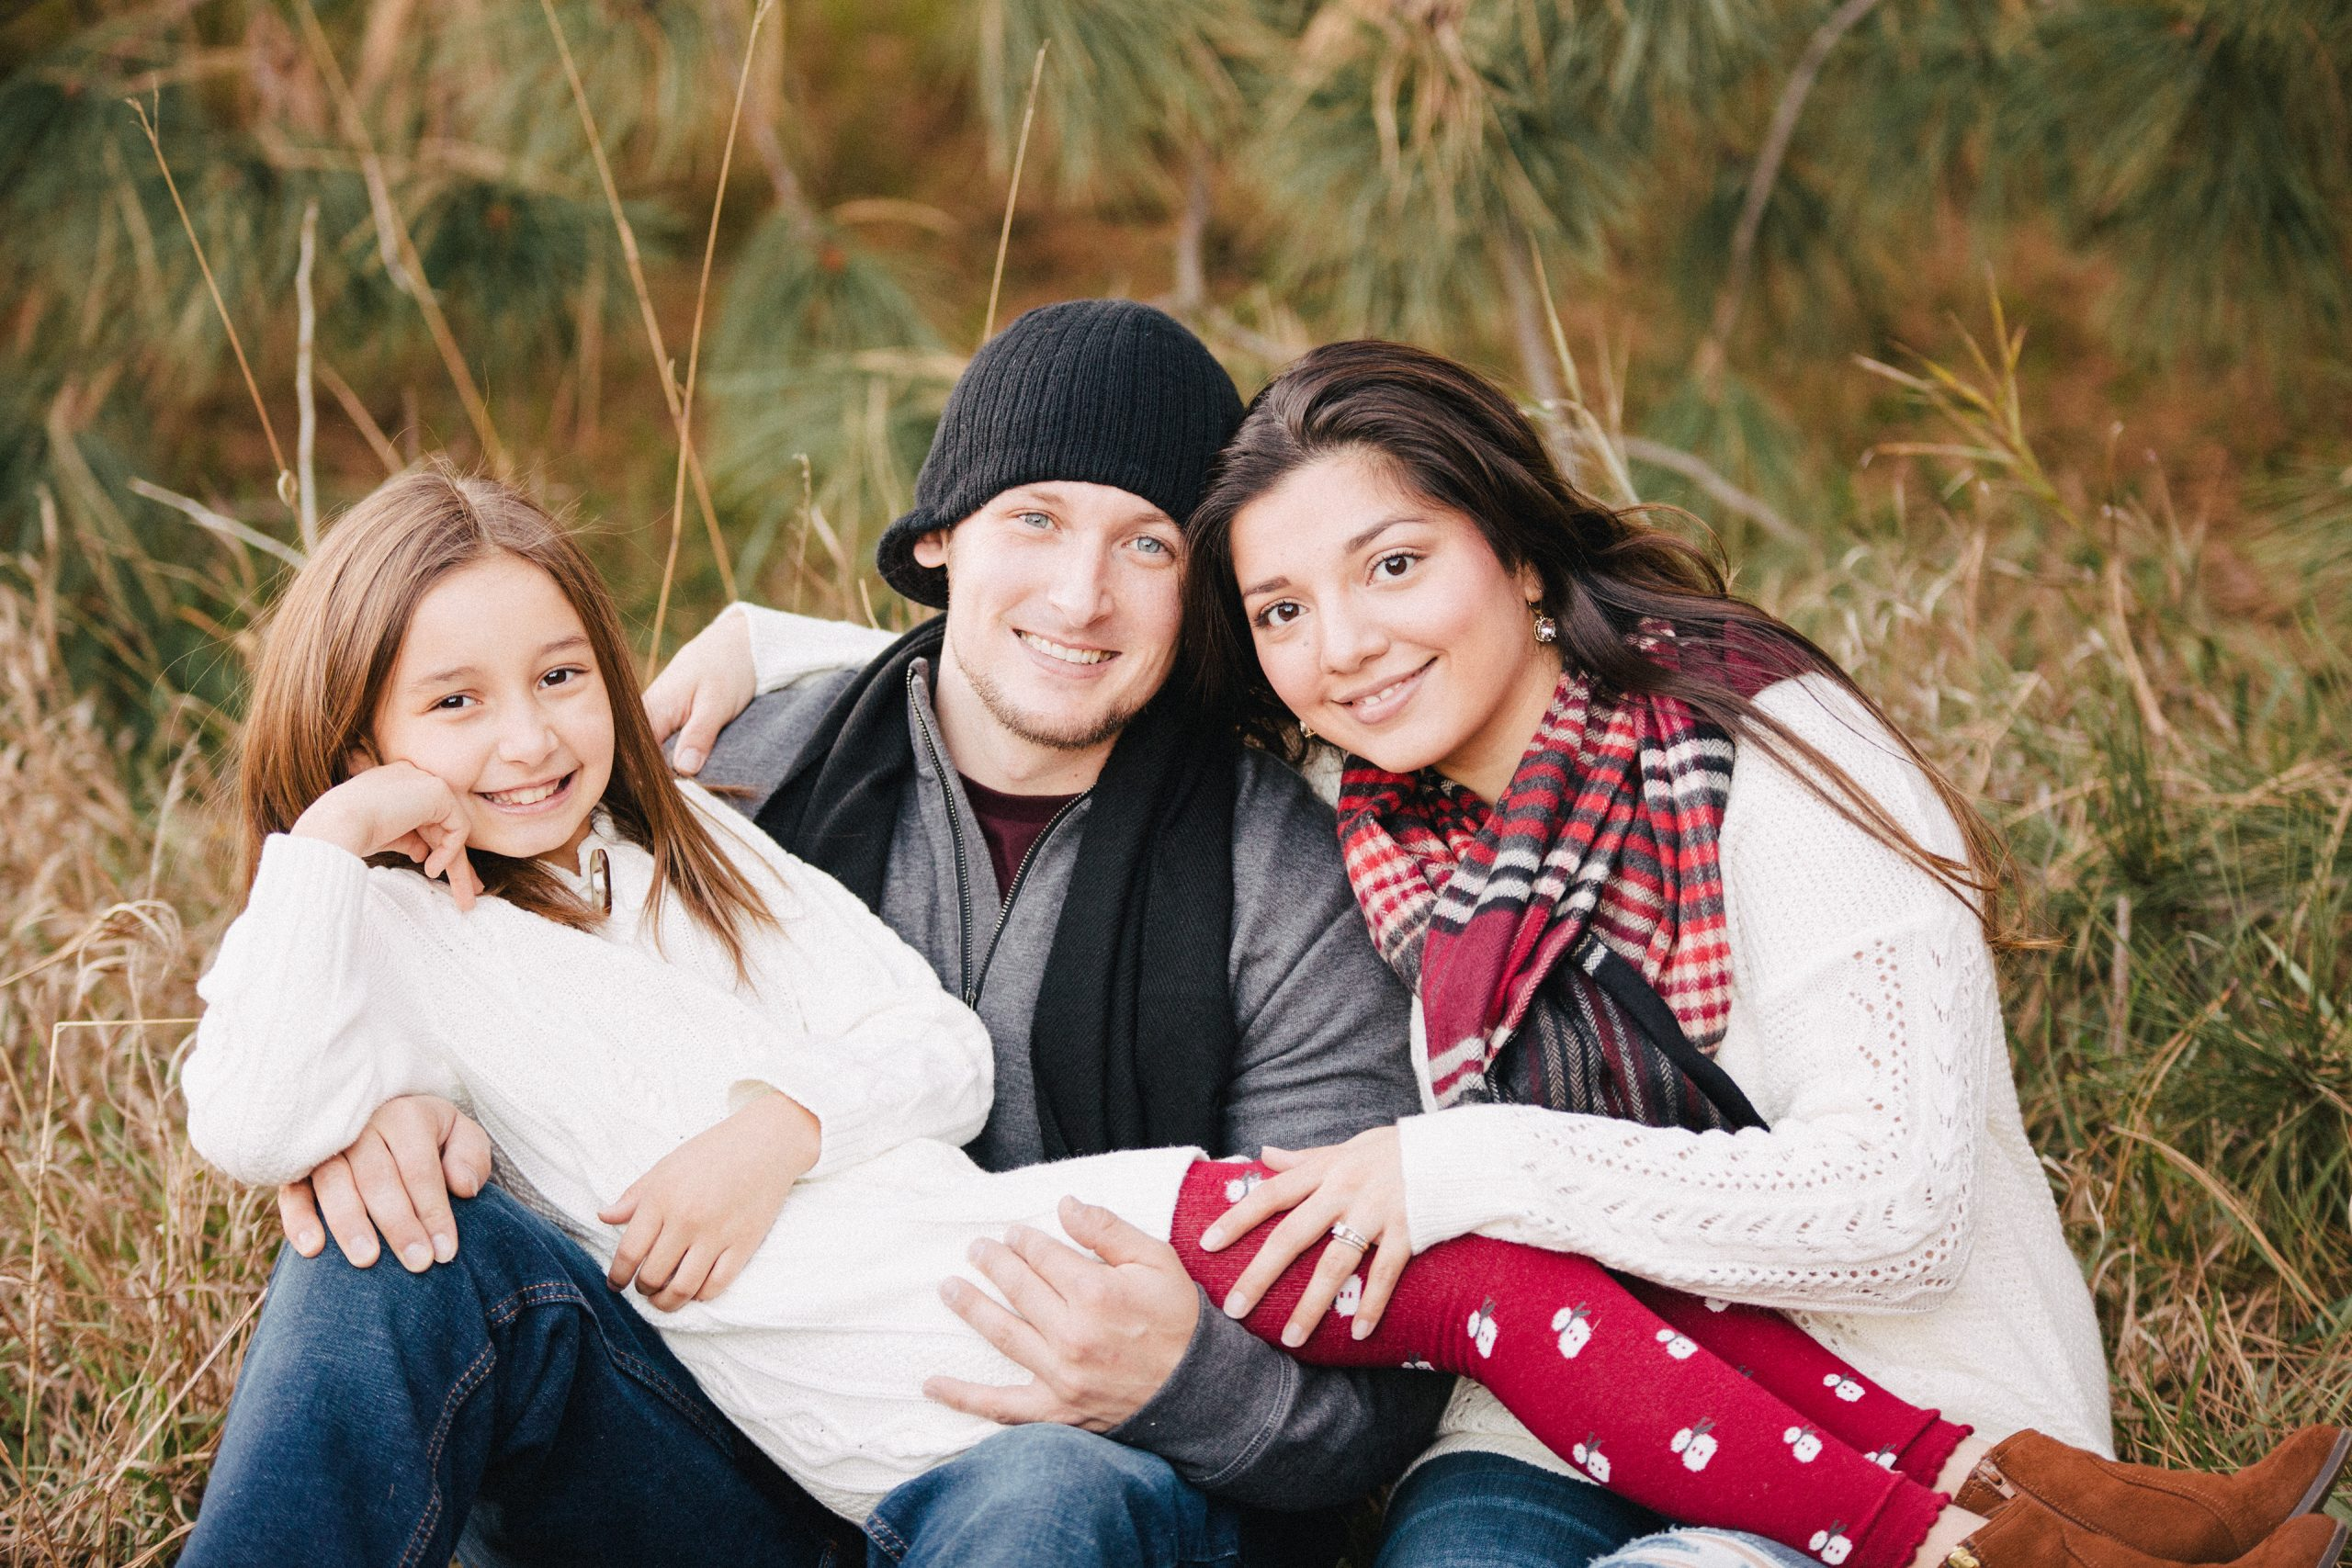 A family of three in Omaha, Nebraska pose for a portrait from Jerred Z Photography.